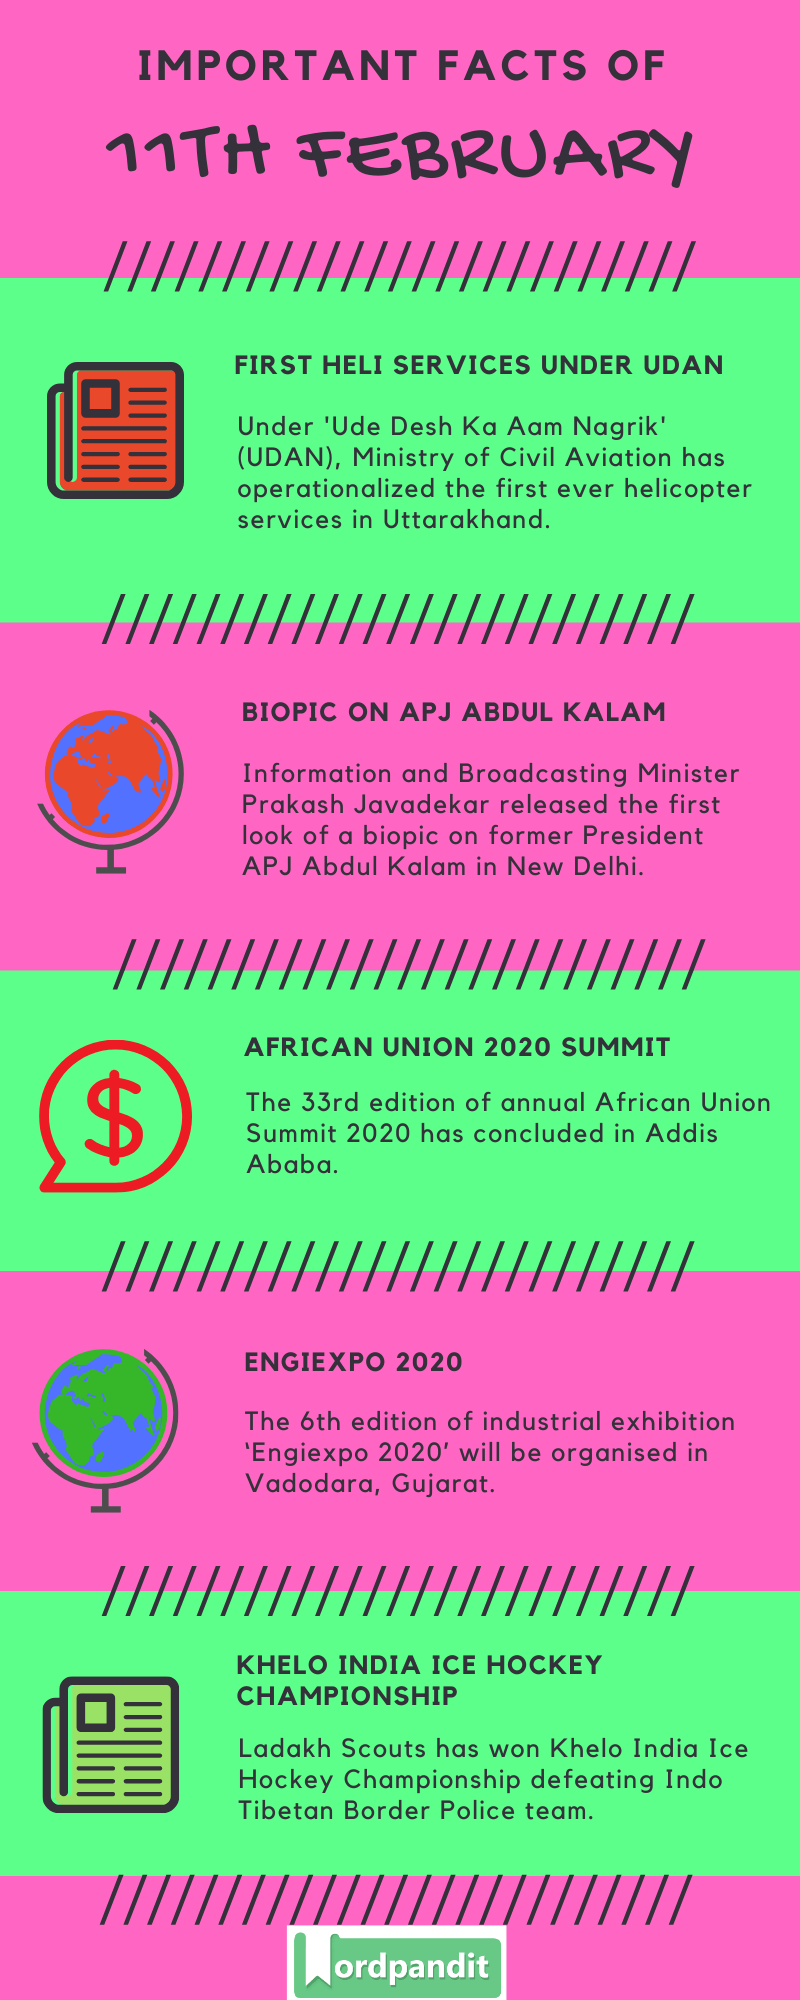 Daily Current Affairs 11 February 2020 Current Affairs Quiz 11 February 2020 Current Affairs Infographic